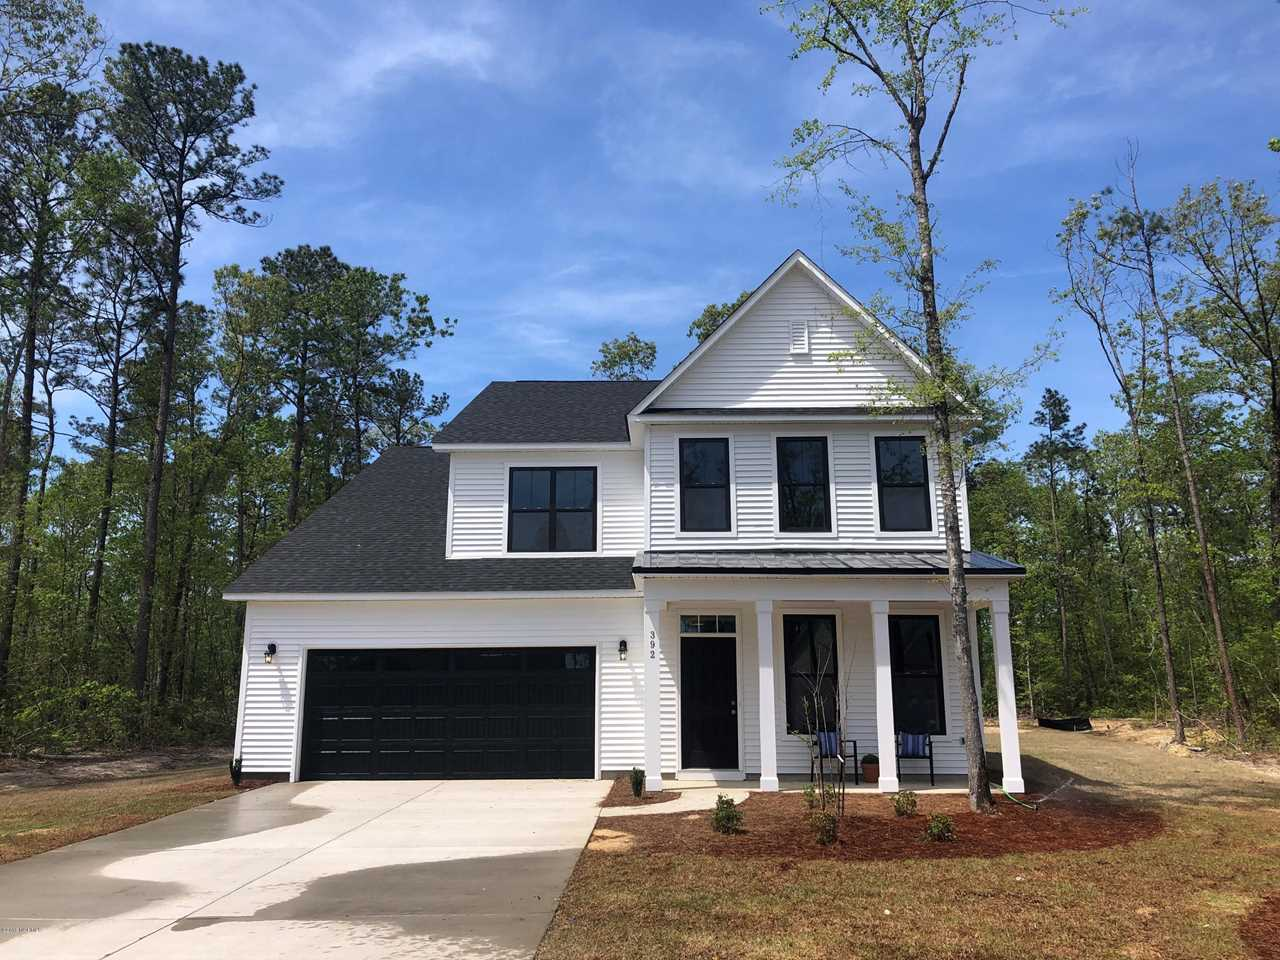 Home For Sale At 392 Bronze Drive, Rocky Point NC in The Knolls At Turkey Creek Photo 1